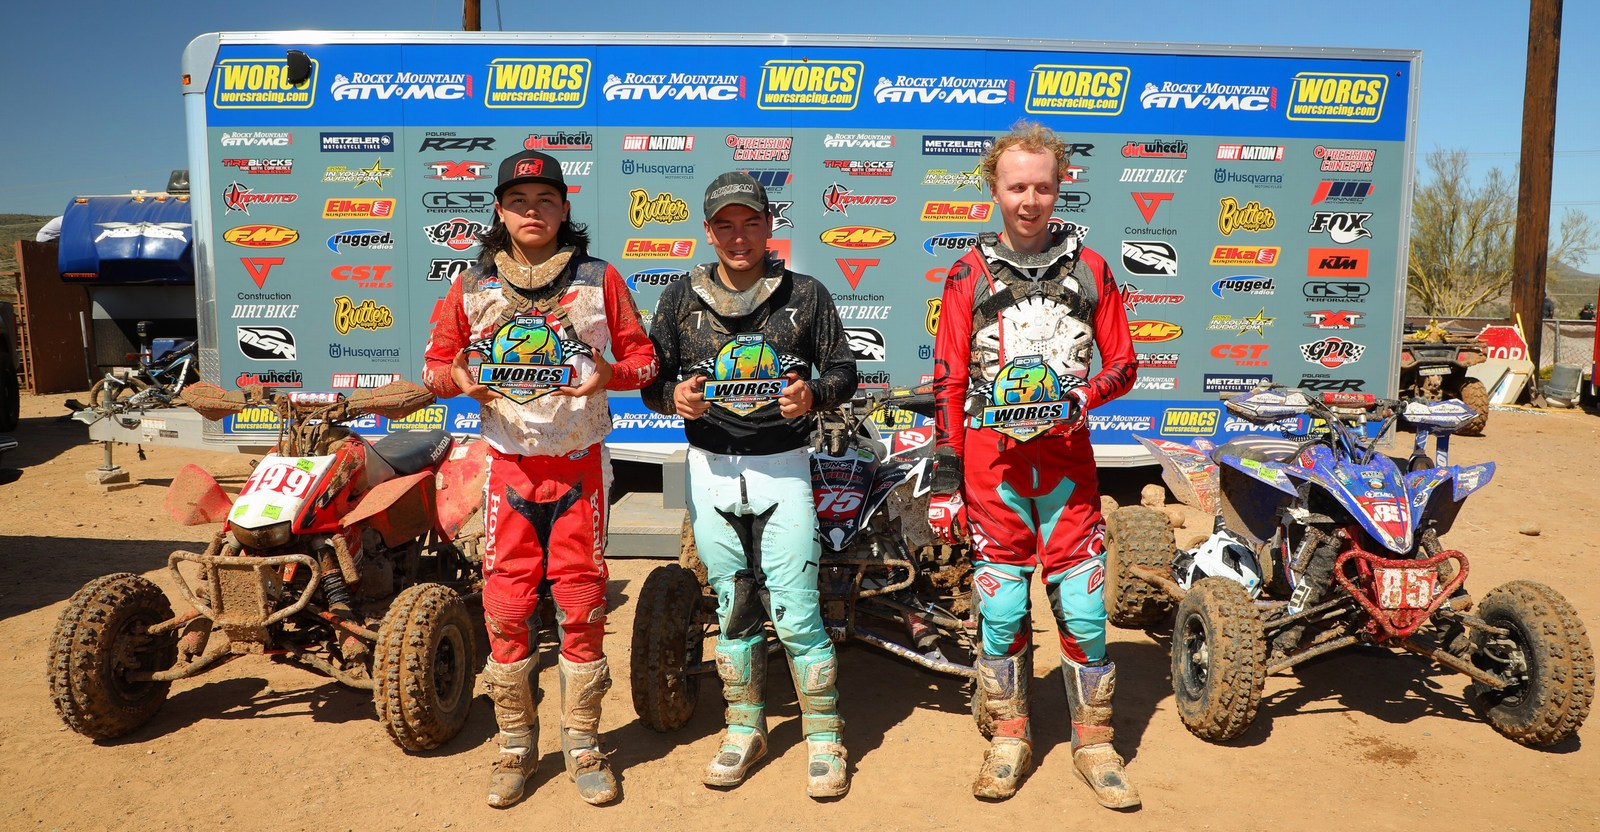 2019-03-proam-atv-podium-worcs-racing